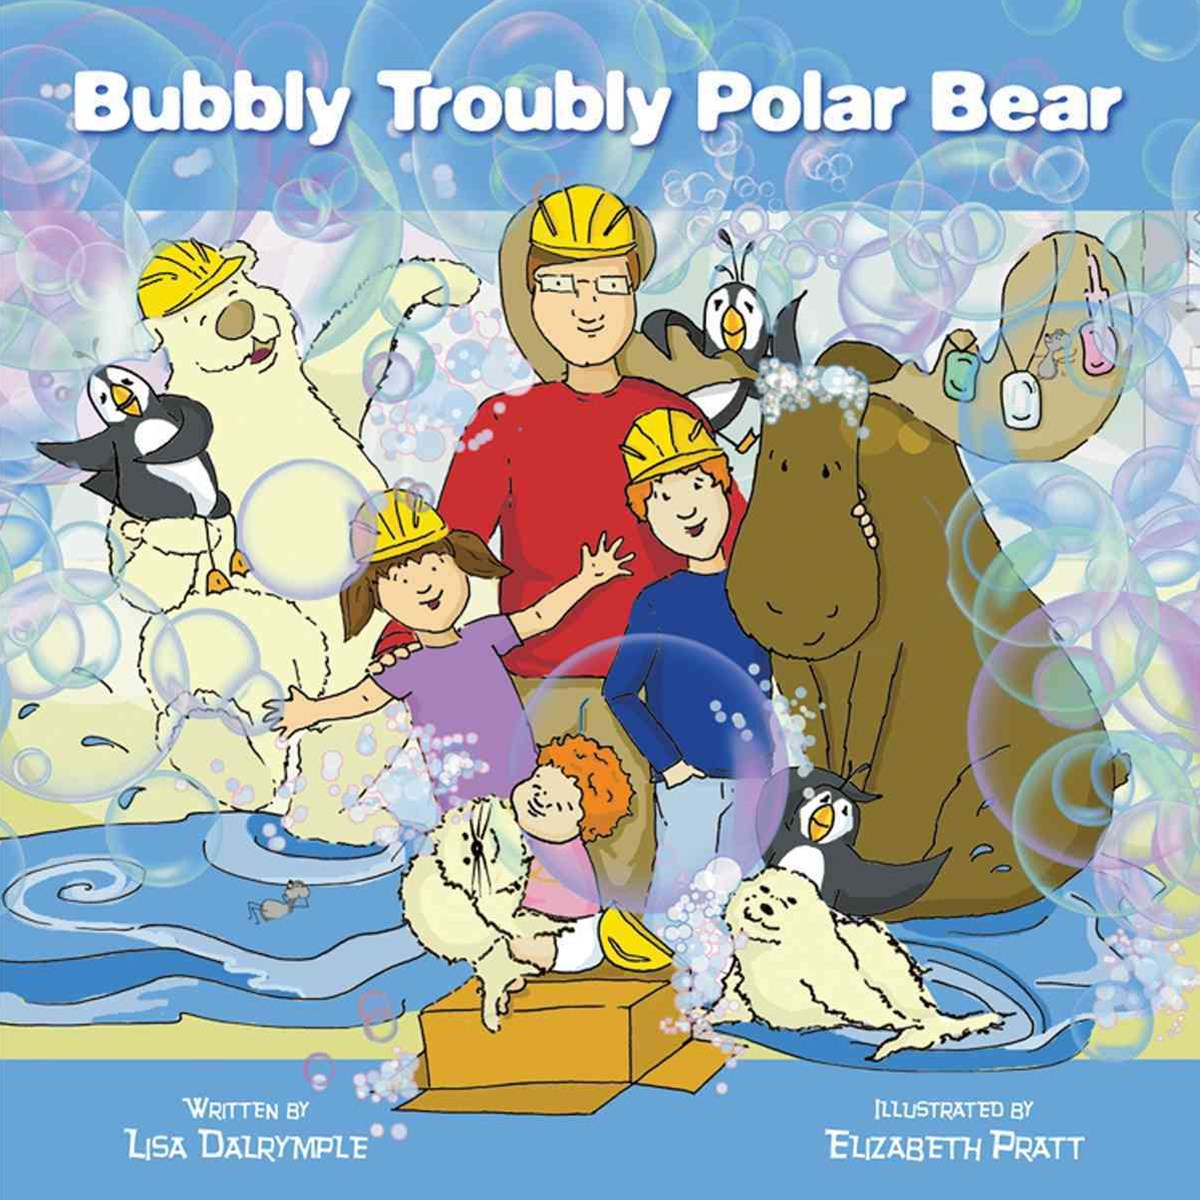 A Bubbly Troubly Polar Bear